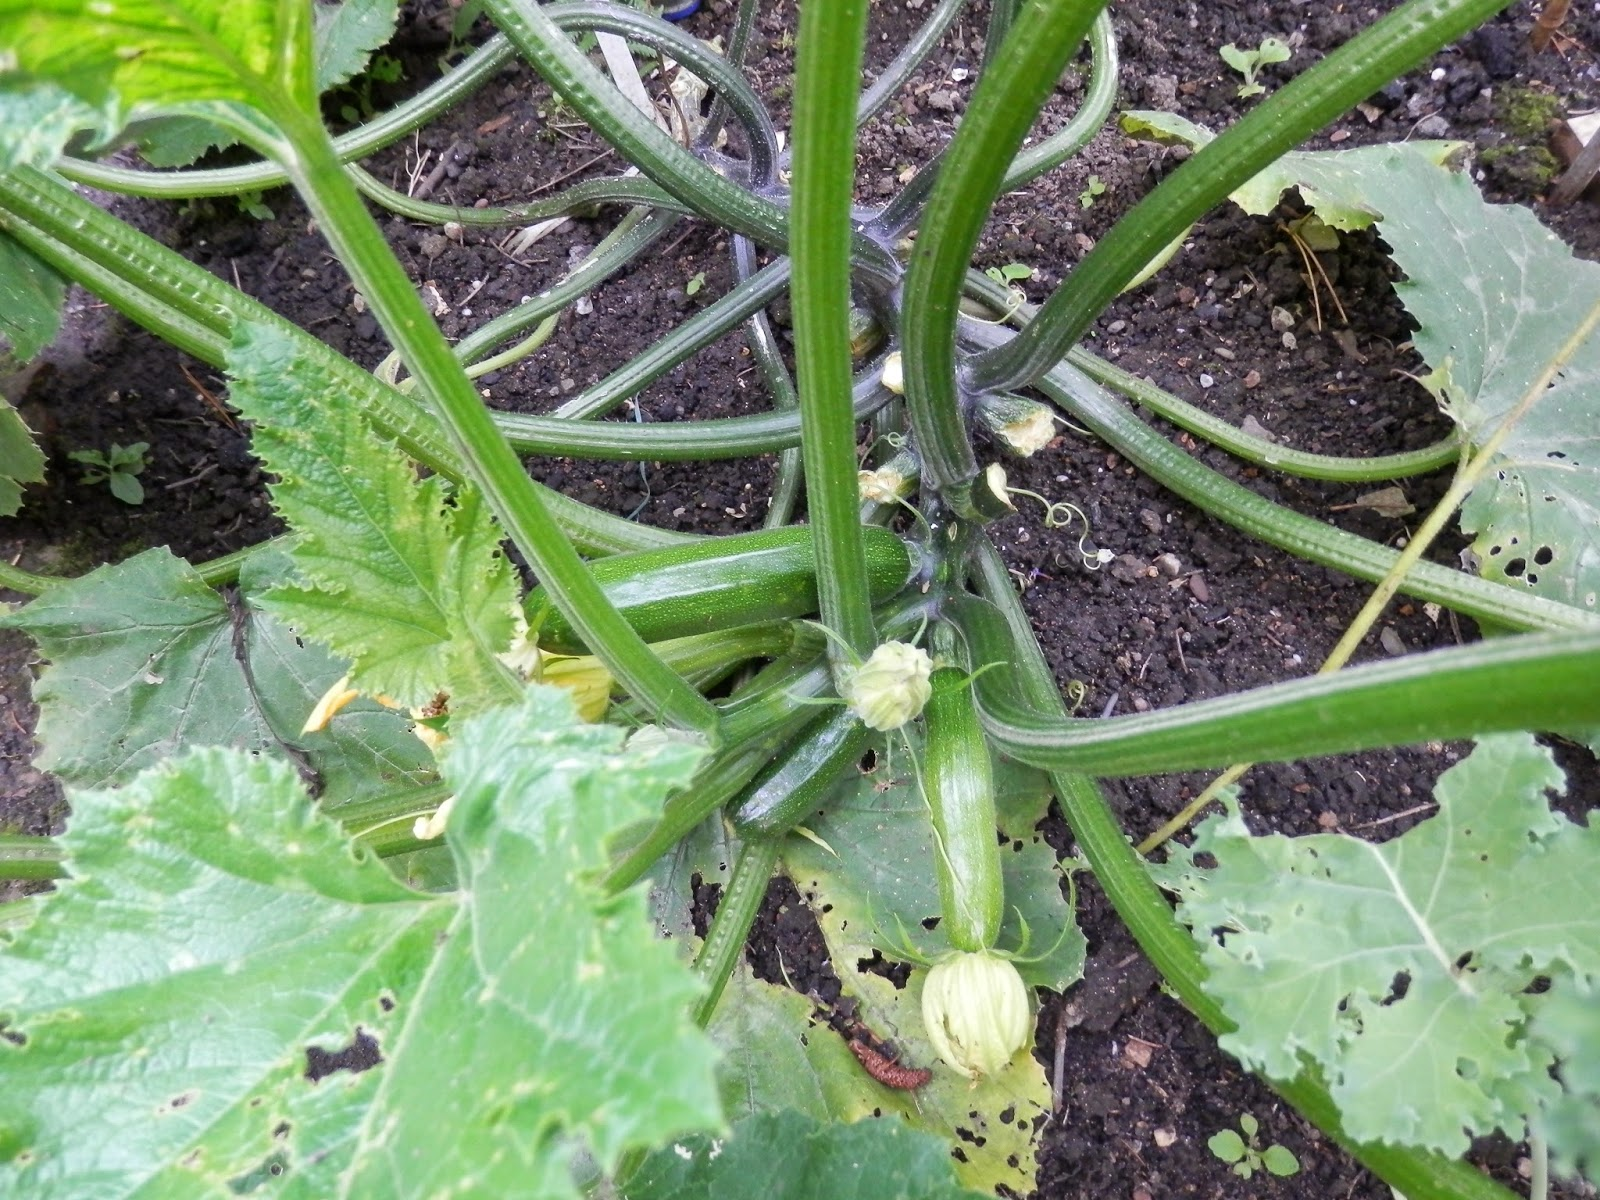 august-garden-vegetable-plot-grow-your-own-second-hand-susie-blog